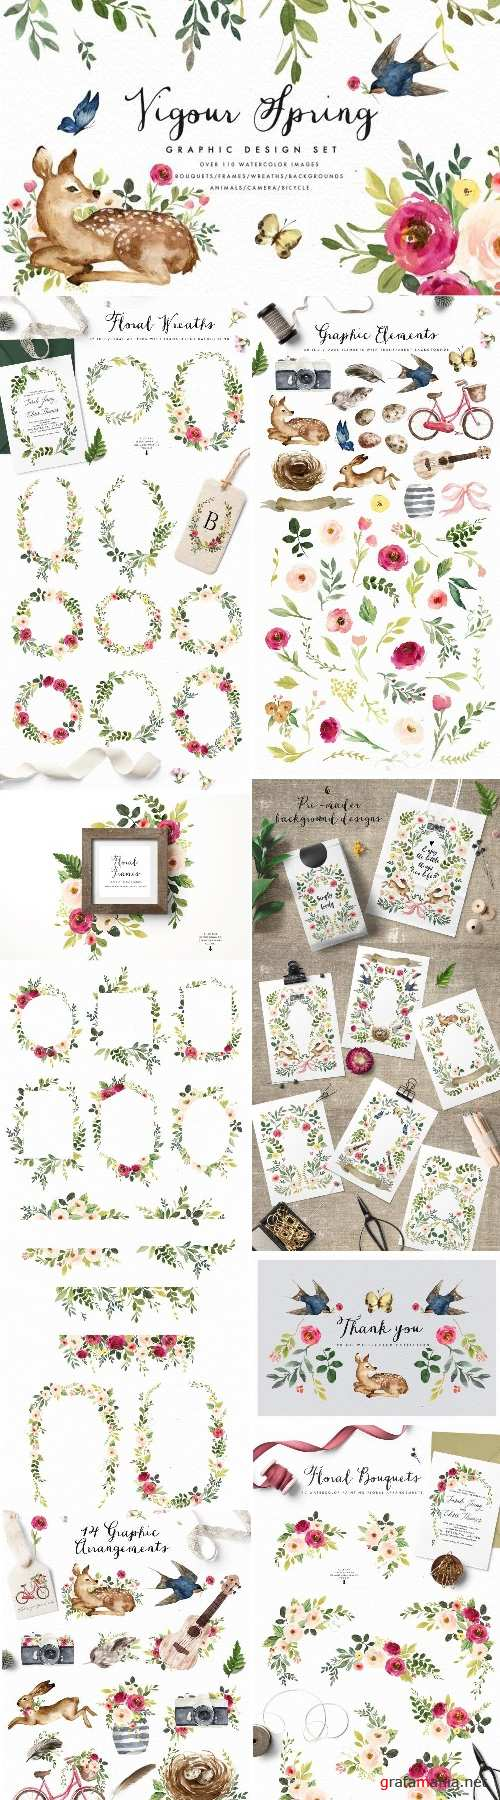 Vigorous Spring-Graphic Design Set - 2190079